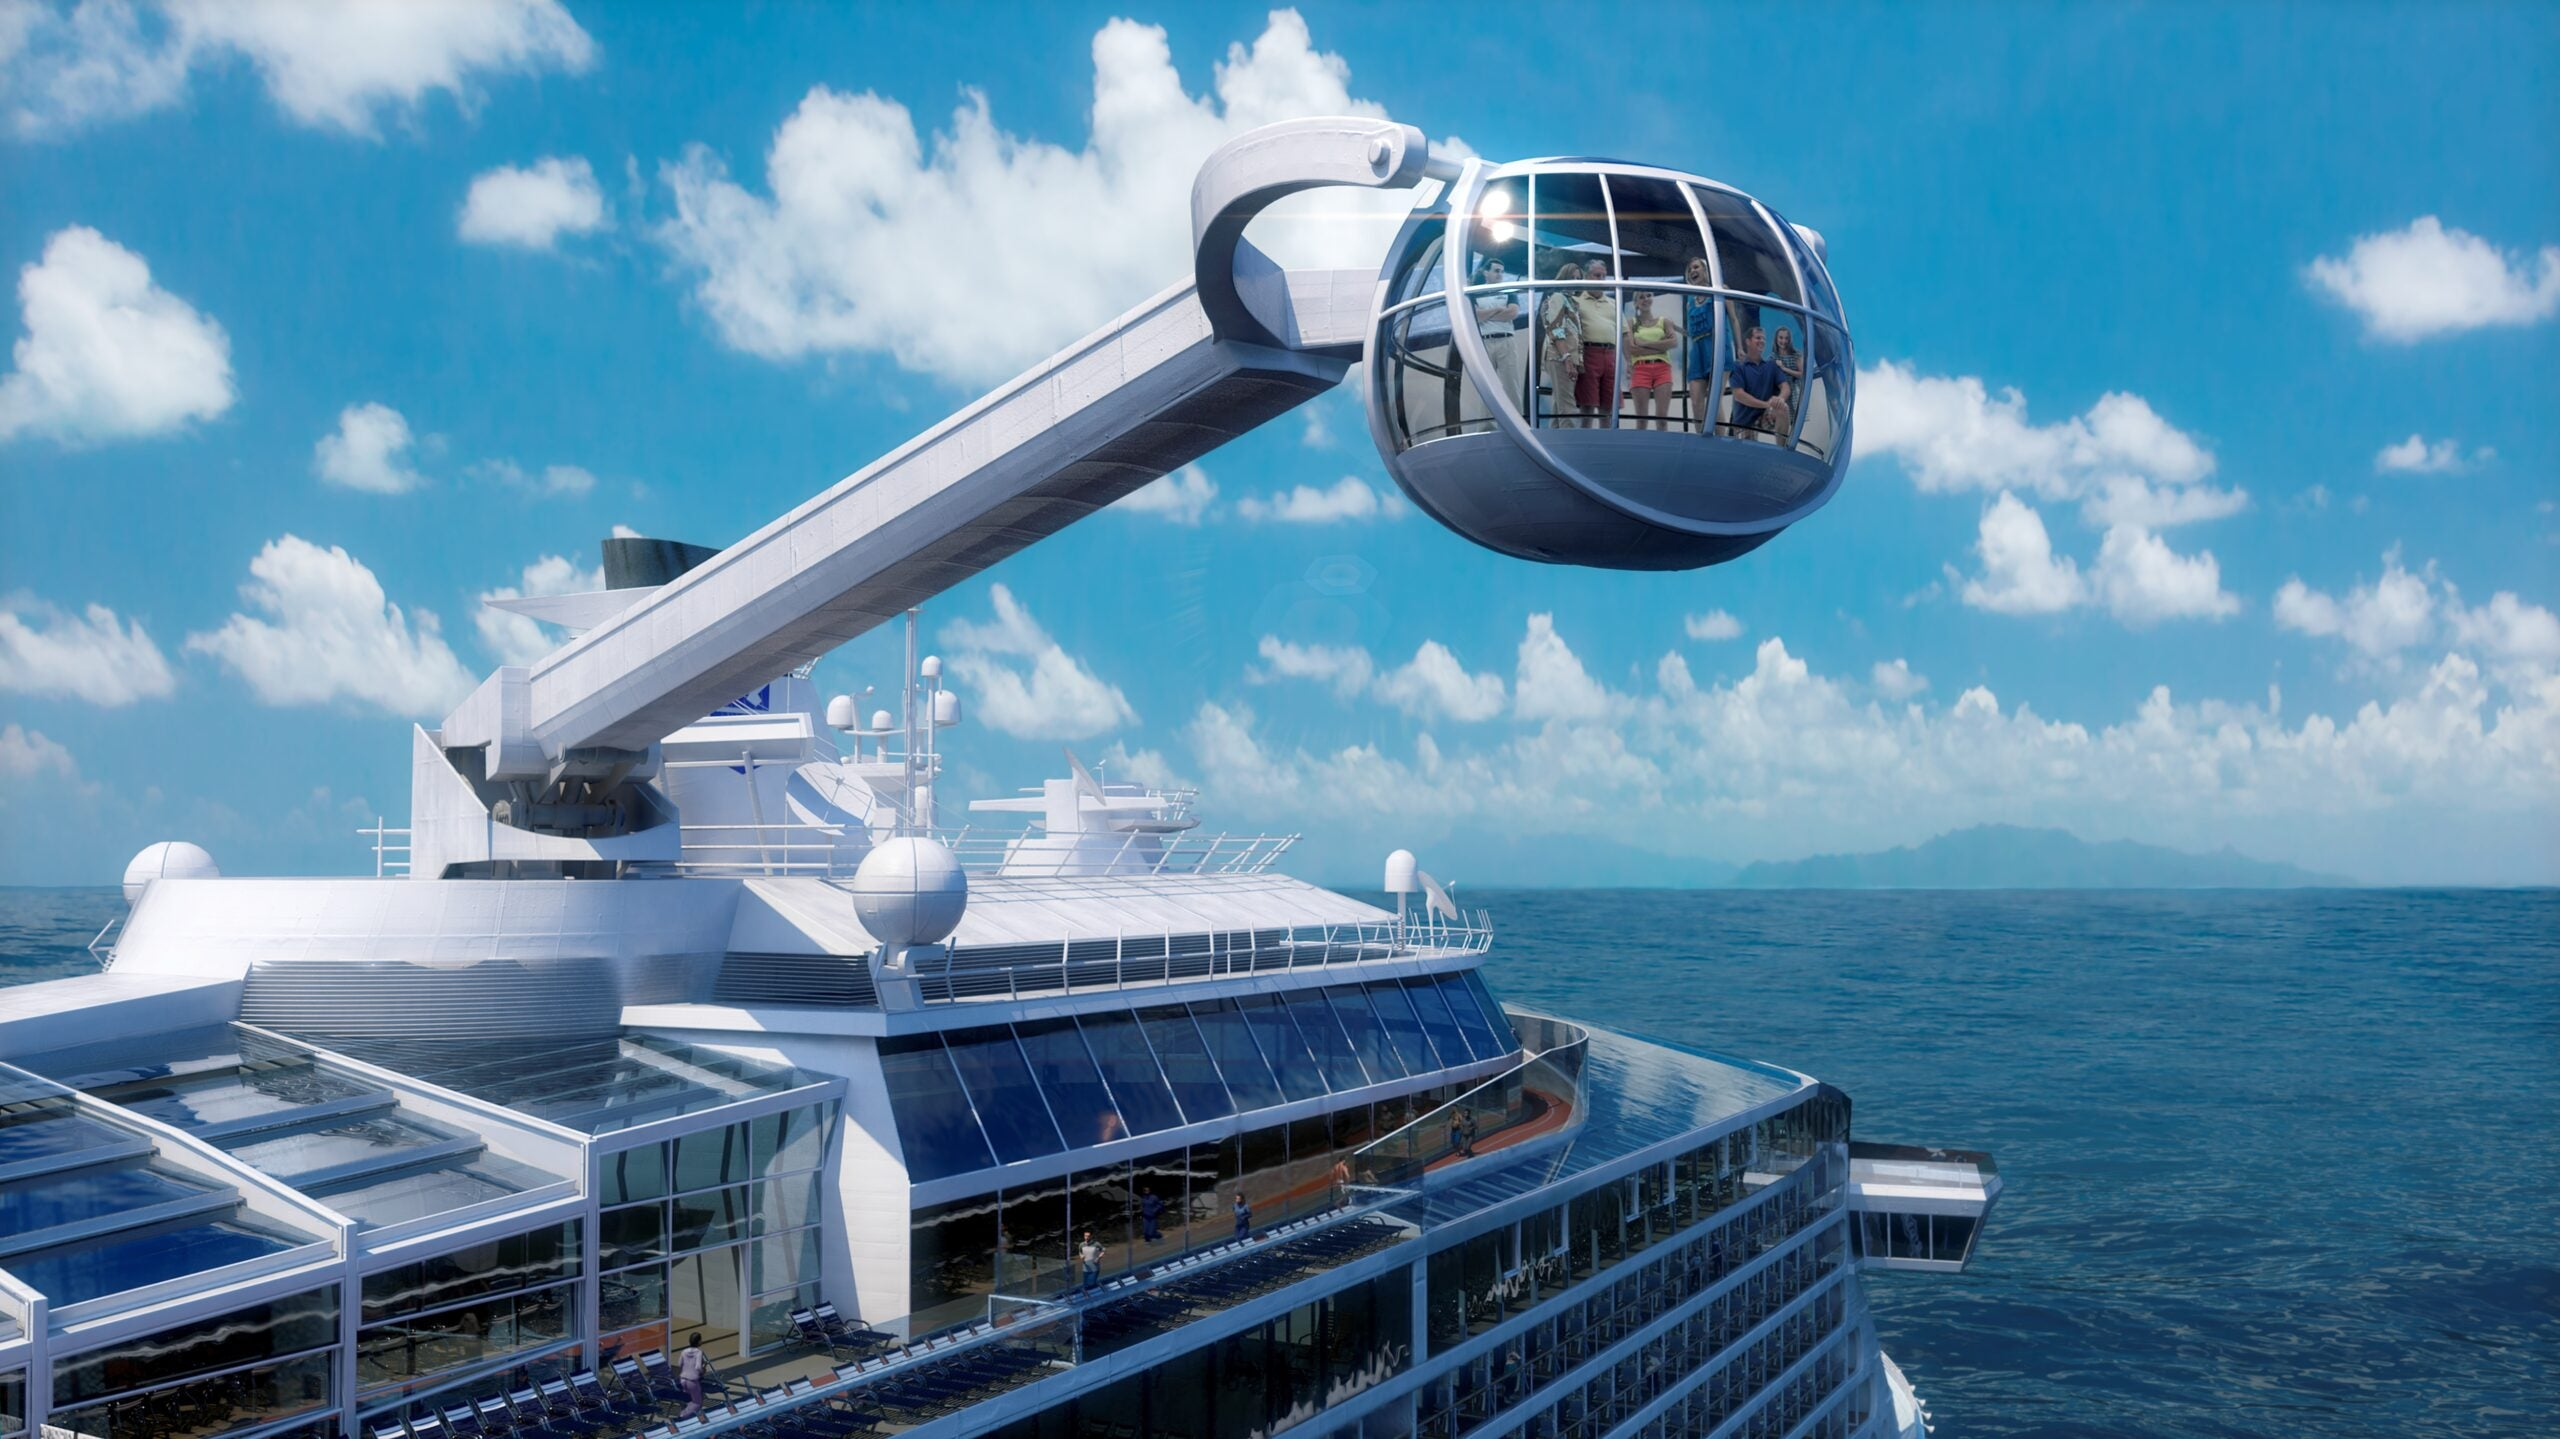 Is This The Cruise Ship Of The Future?